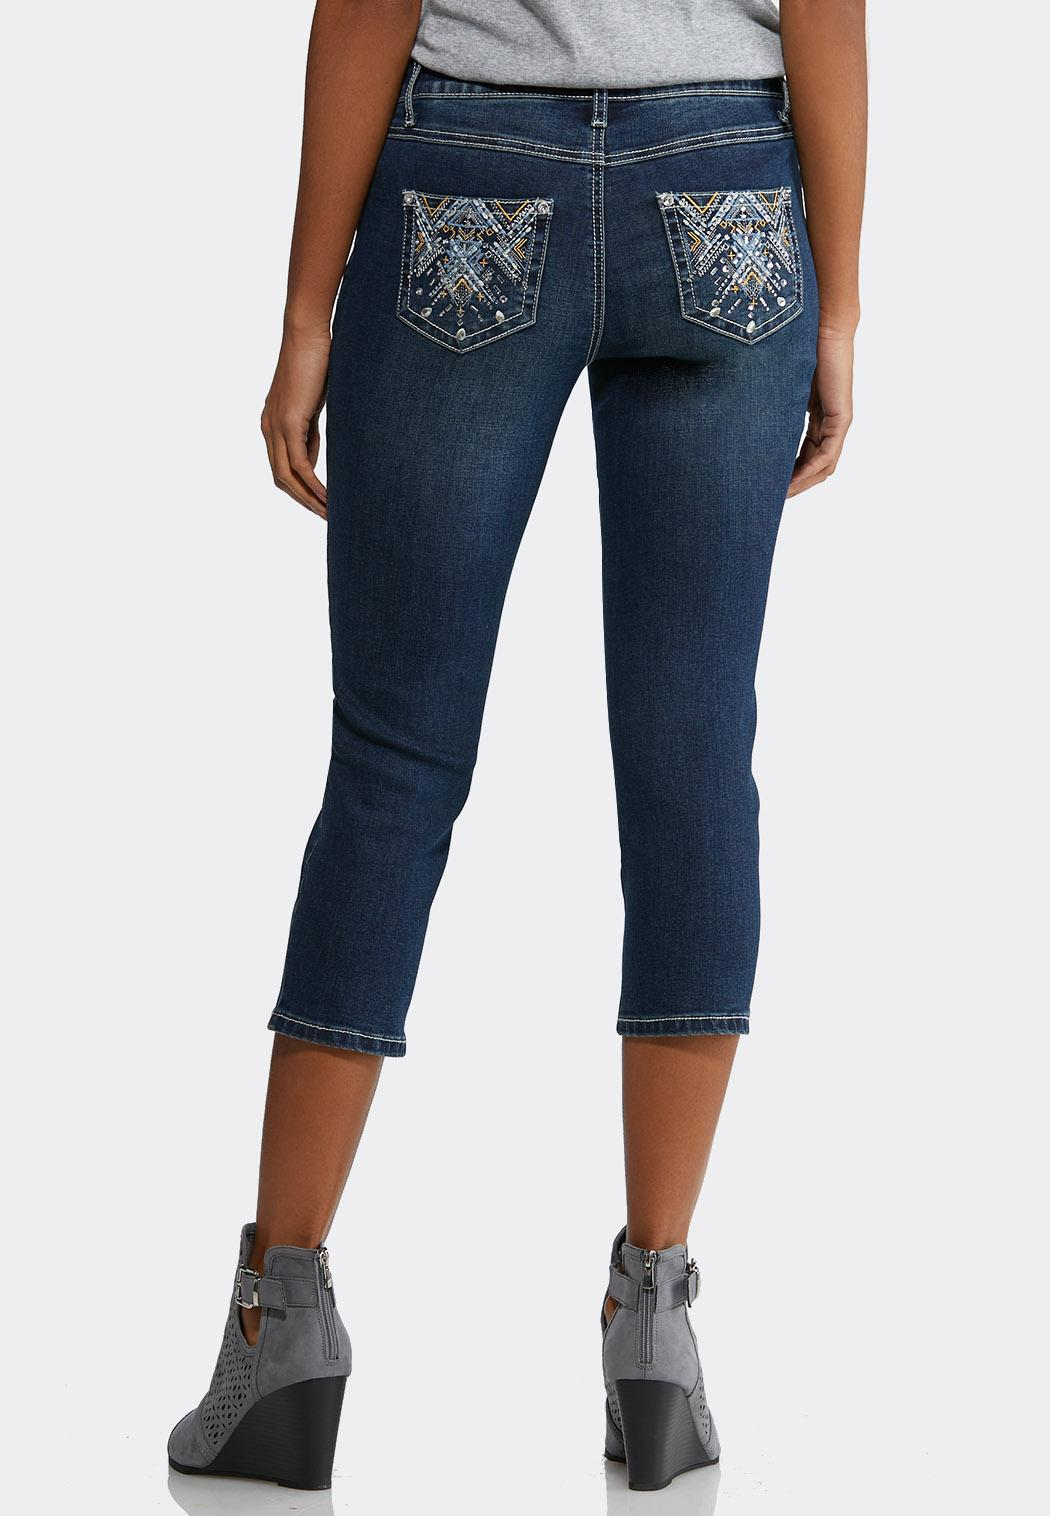 d9732926602 Cropped Aztec Embellished Jeans alternate view Cropped Aztec Embellished  Jeans